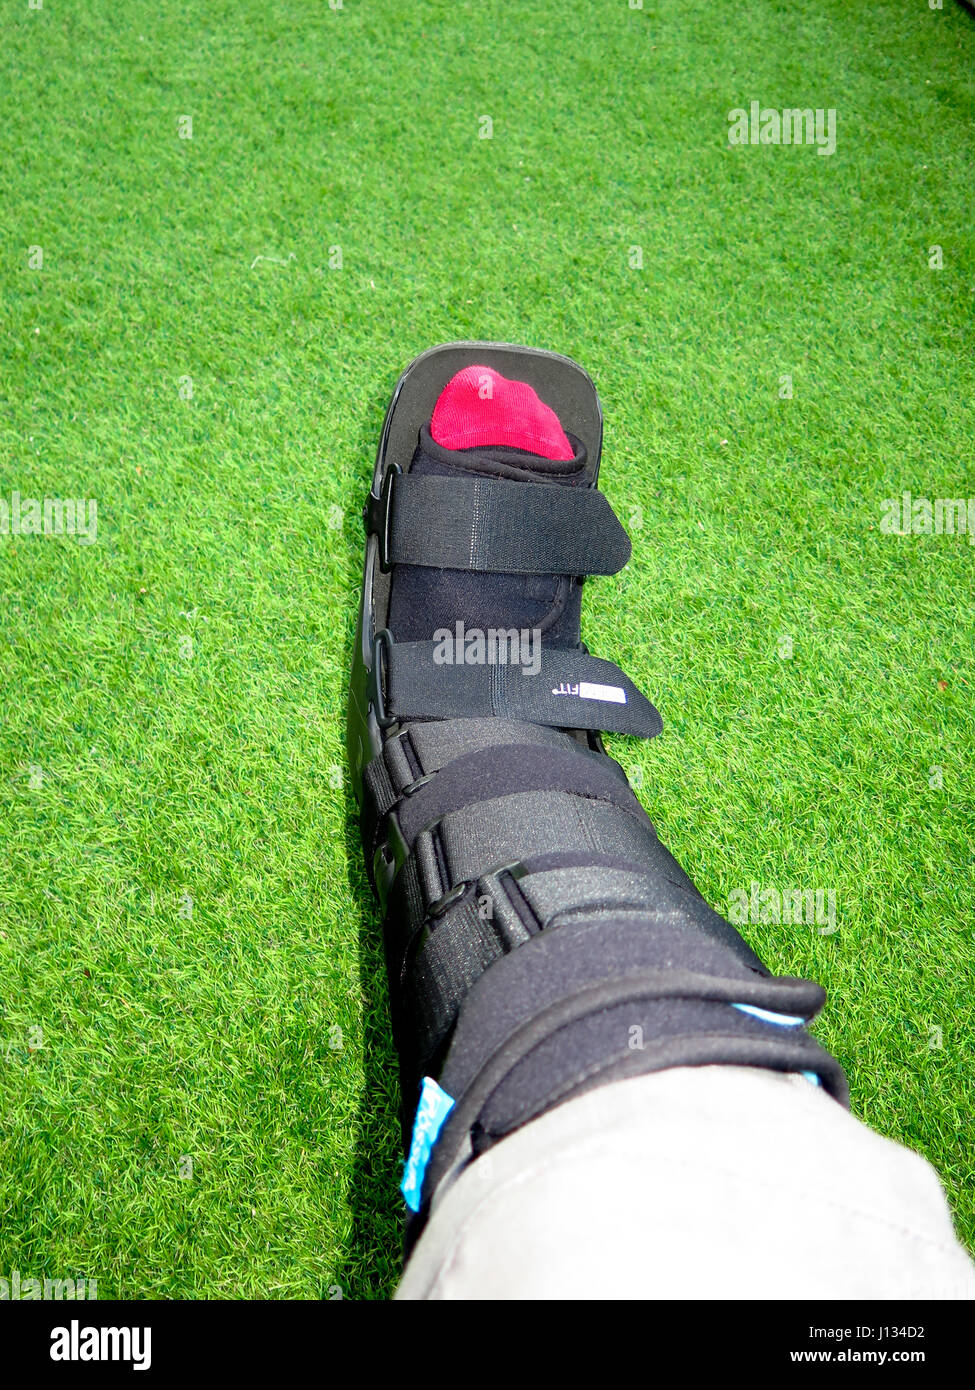 Medical support boot for broken ankle - Stock Image